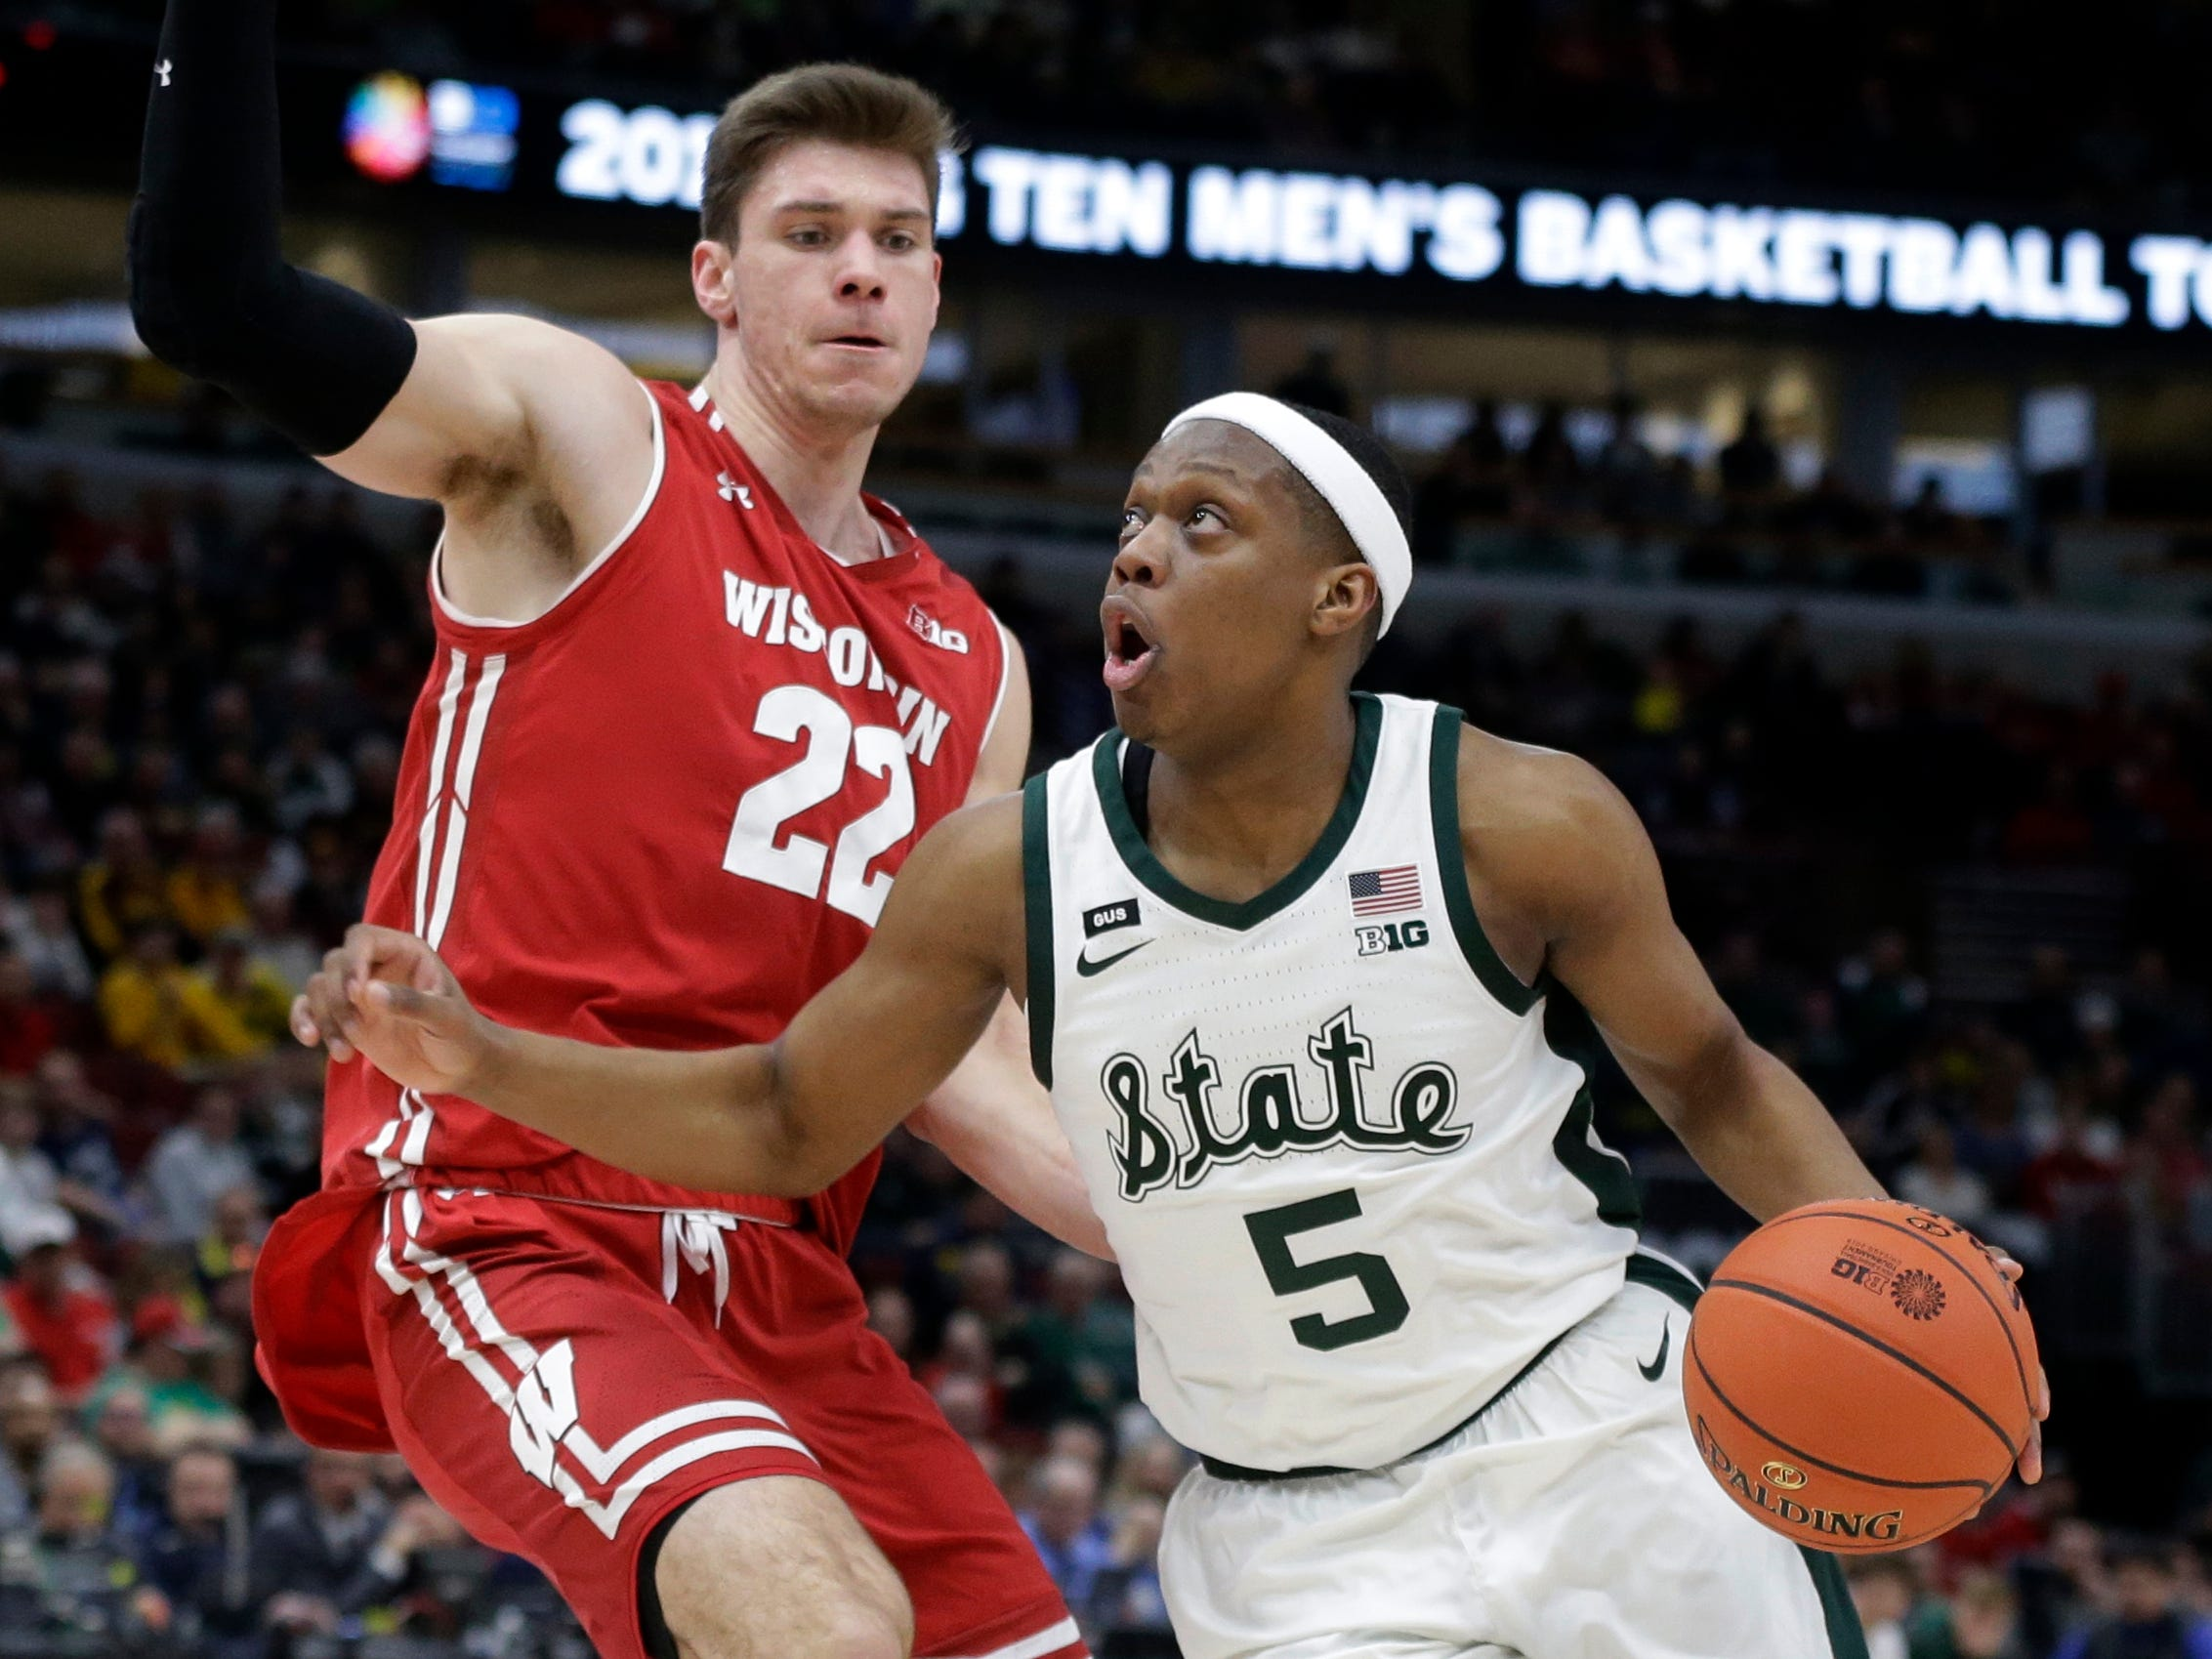 Michigan State's Cassius Winston drives past Wisconsin's Ethan Happ during the first half.